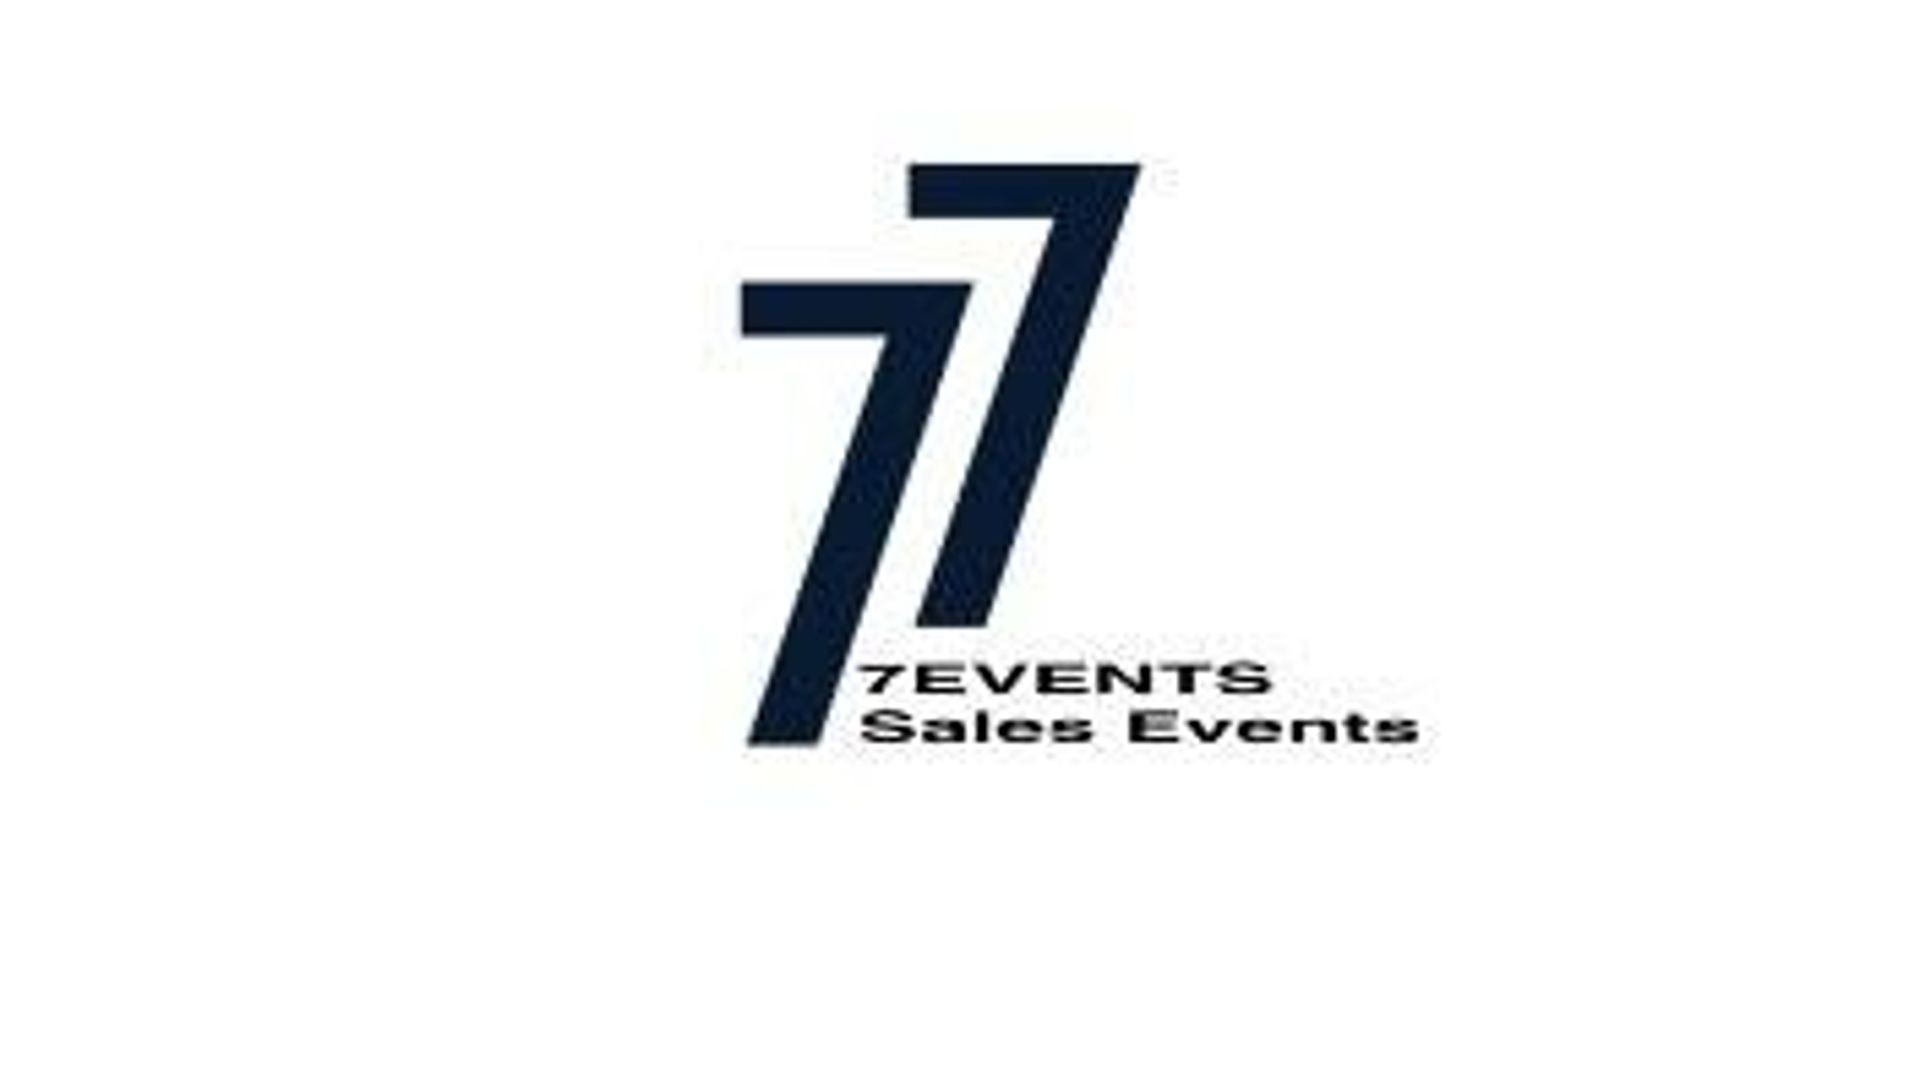 7events